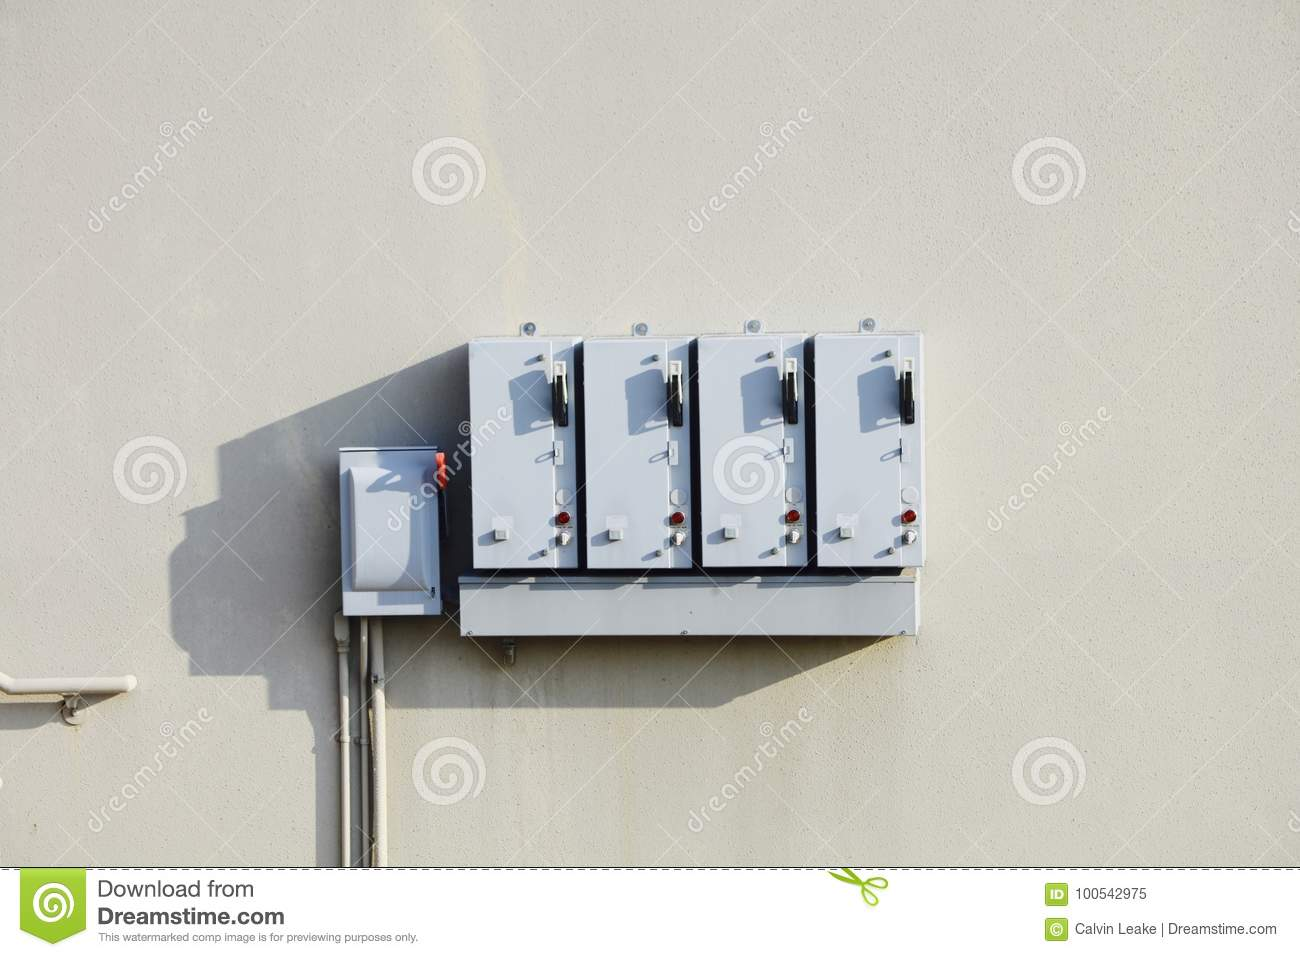 Circuit Breaker Box Commercial Stock Image - Image of commercial ...